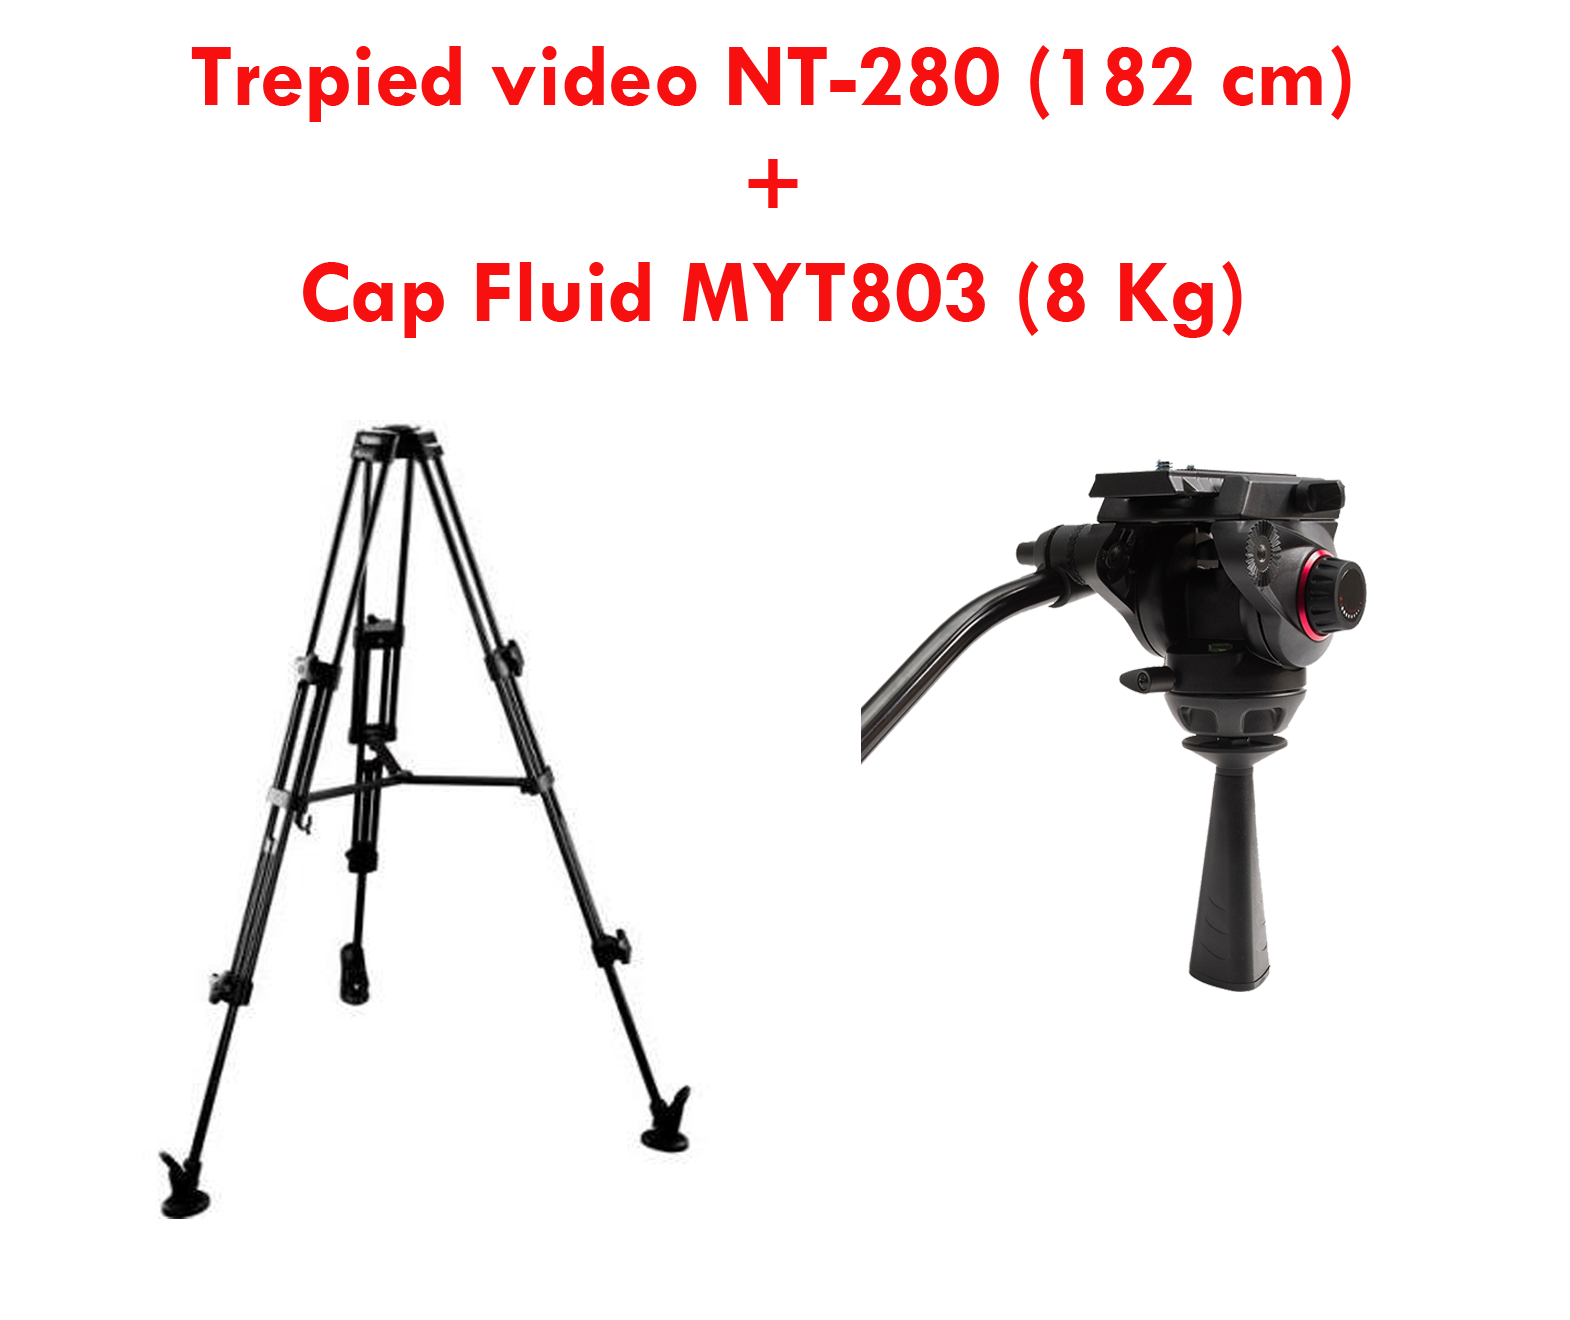 TREPIED VIDEO NT-280 (GA752) 182 cm + Cap Fluid MILIBOO MYT803